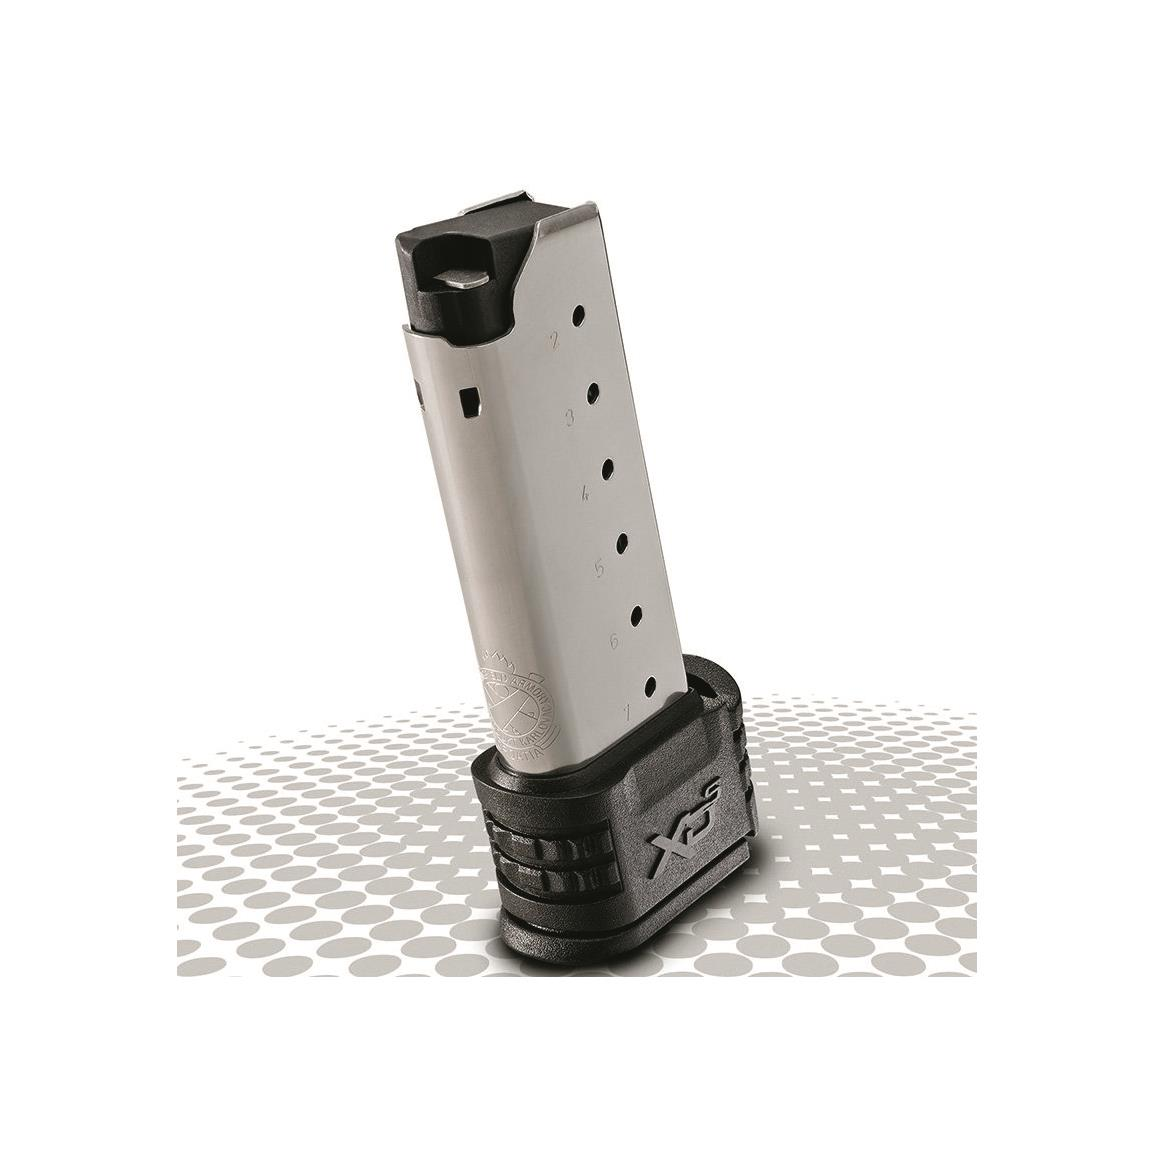 Springfield XD-S .45 ACP 7 Round Extended Magazine